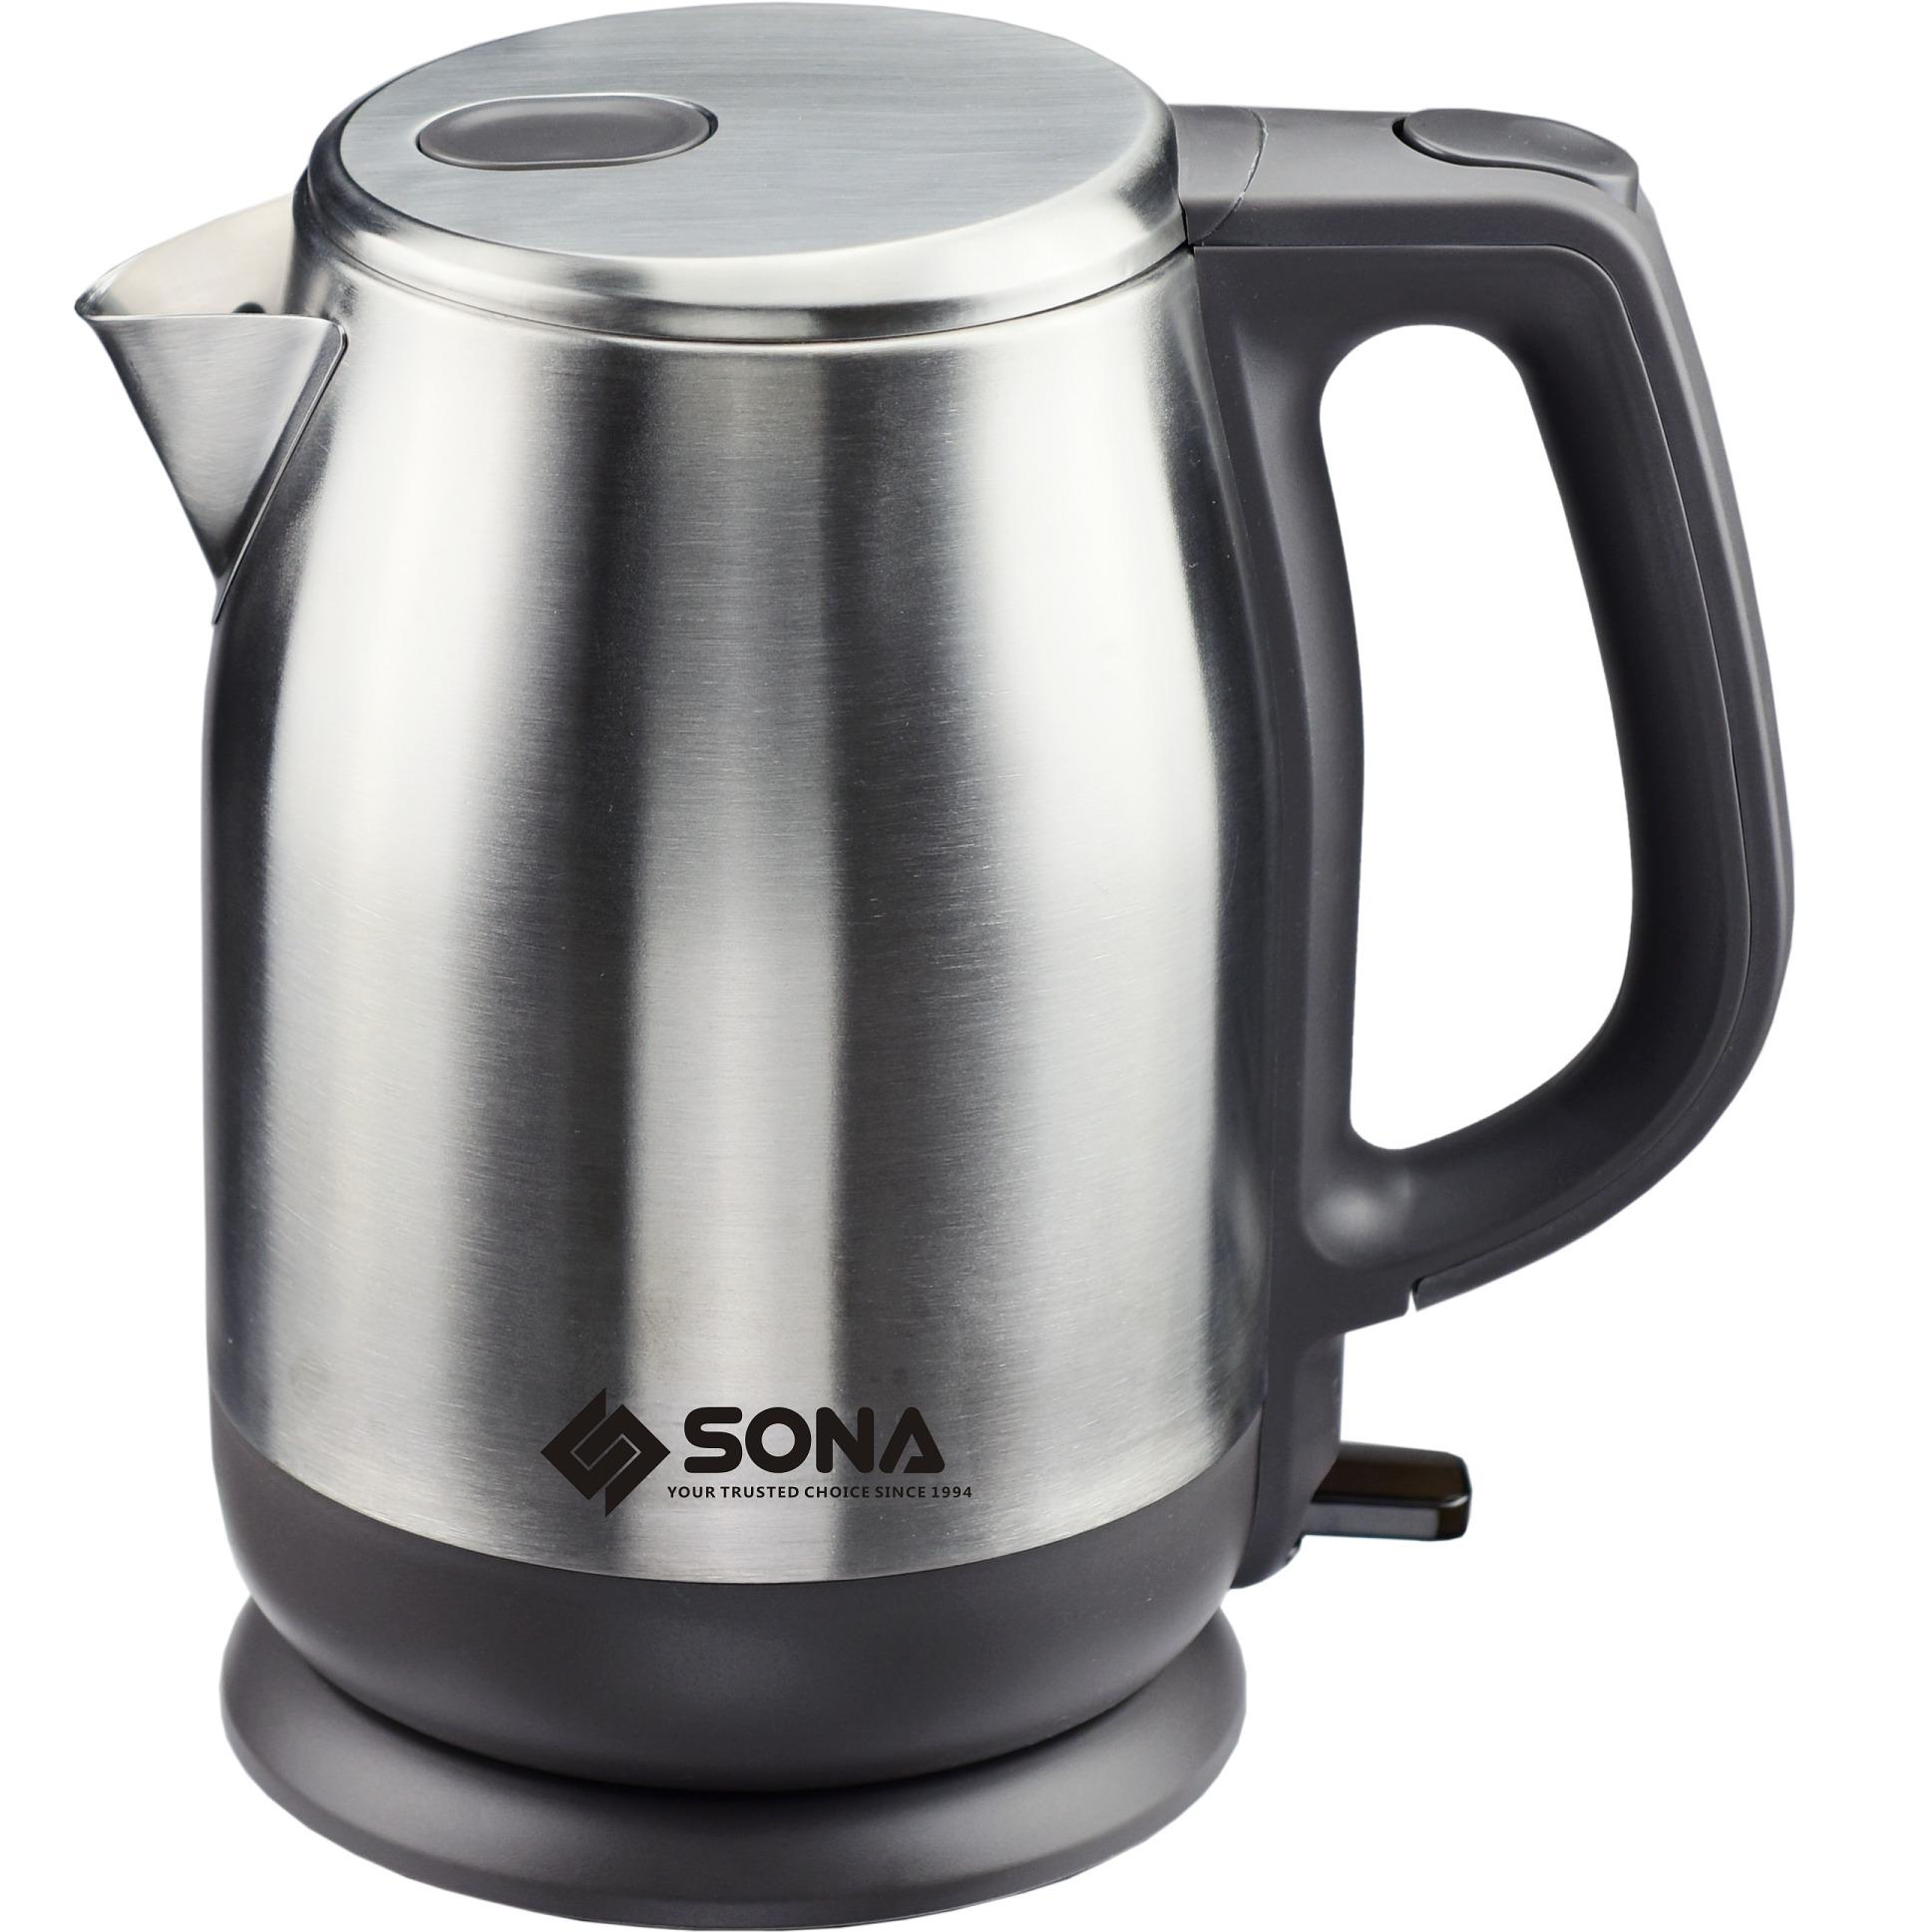 Sona Sck5011 Stainless Steel Kettle Jug For Sale